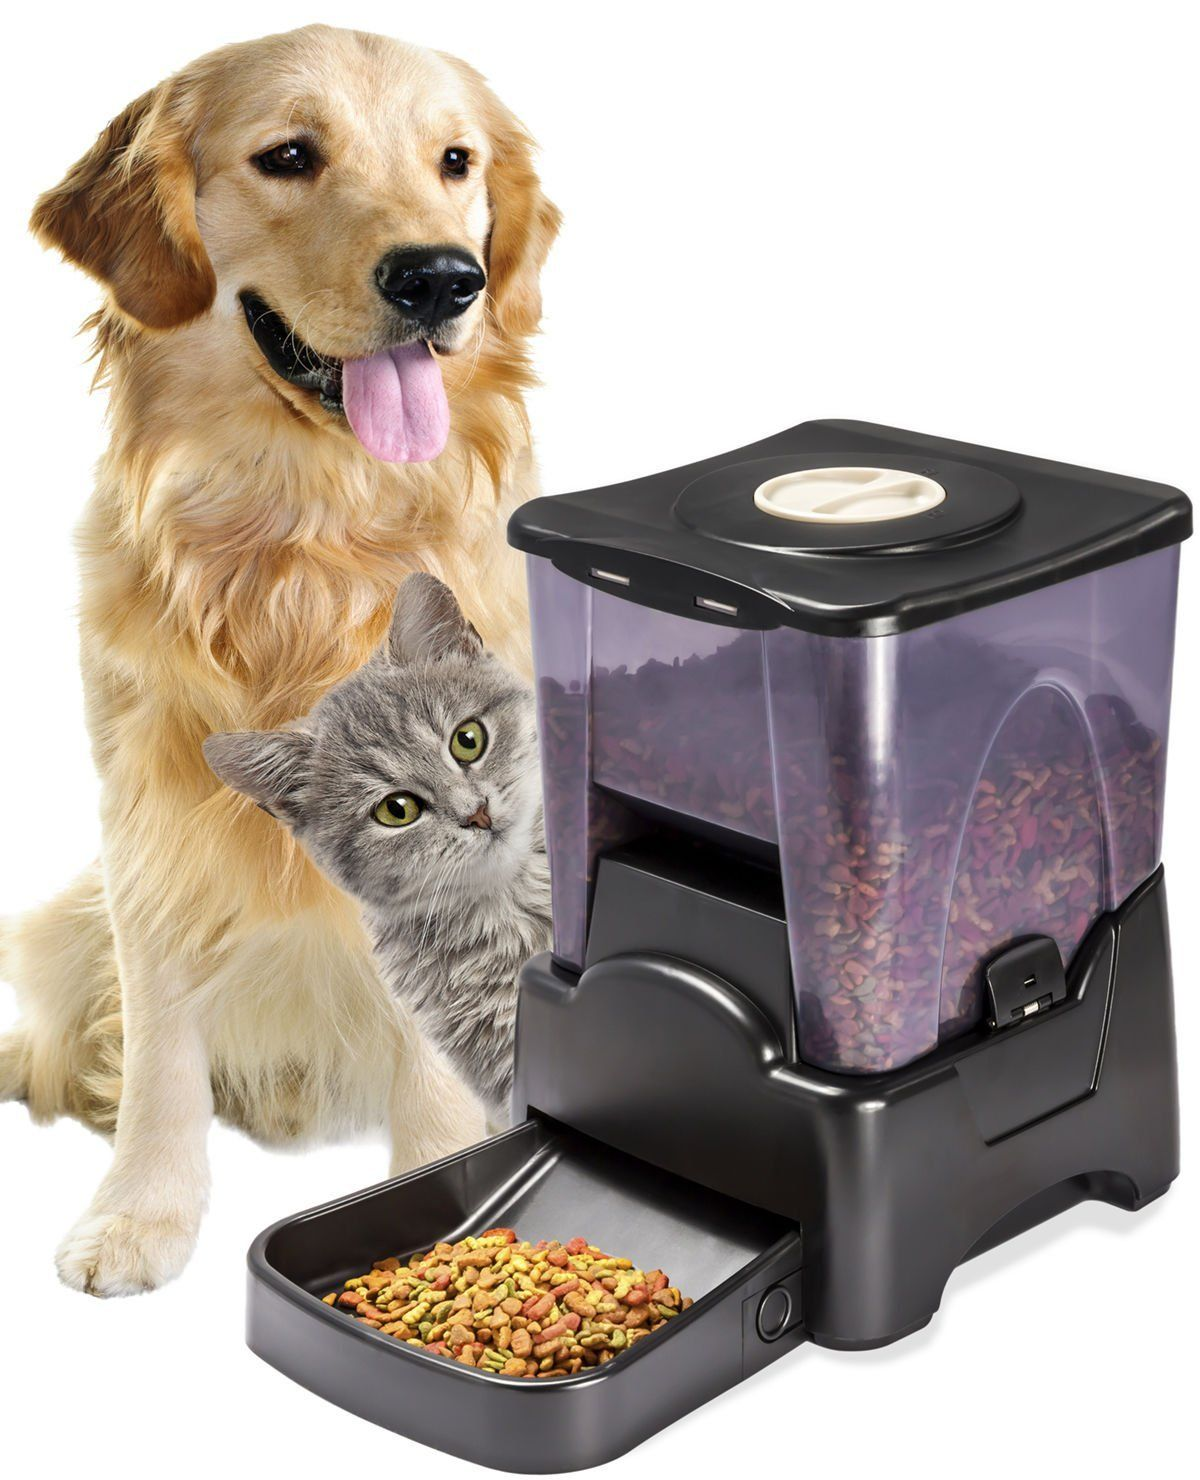 Automatic Pet Feeder Dog Cat Programmable Animal Food Bowl Auto